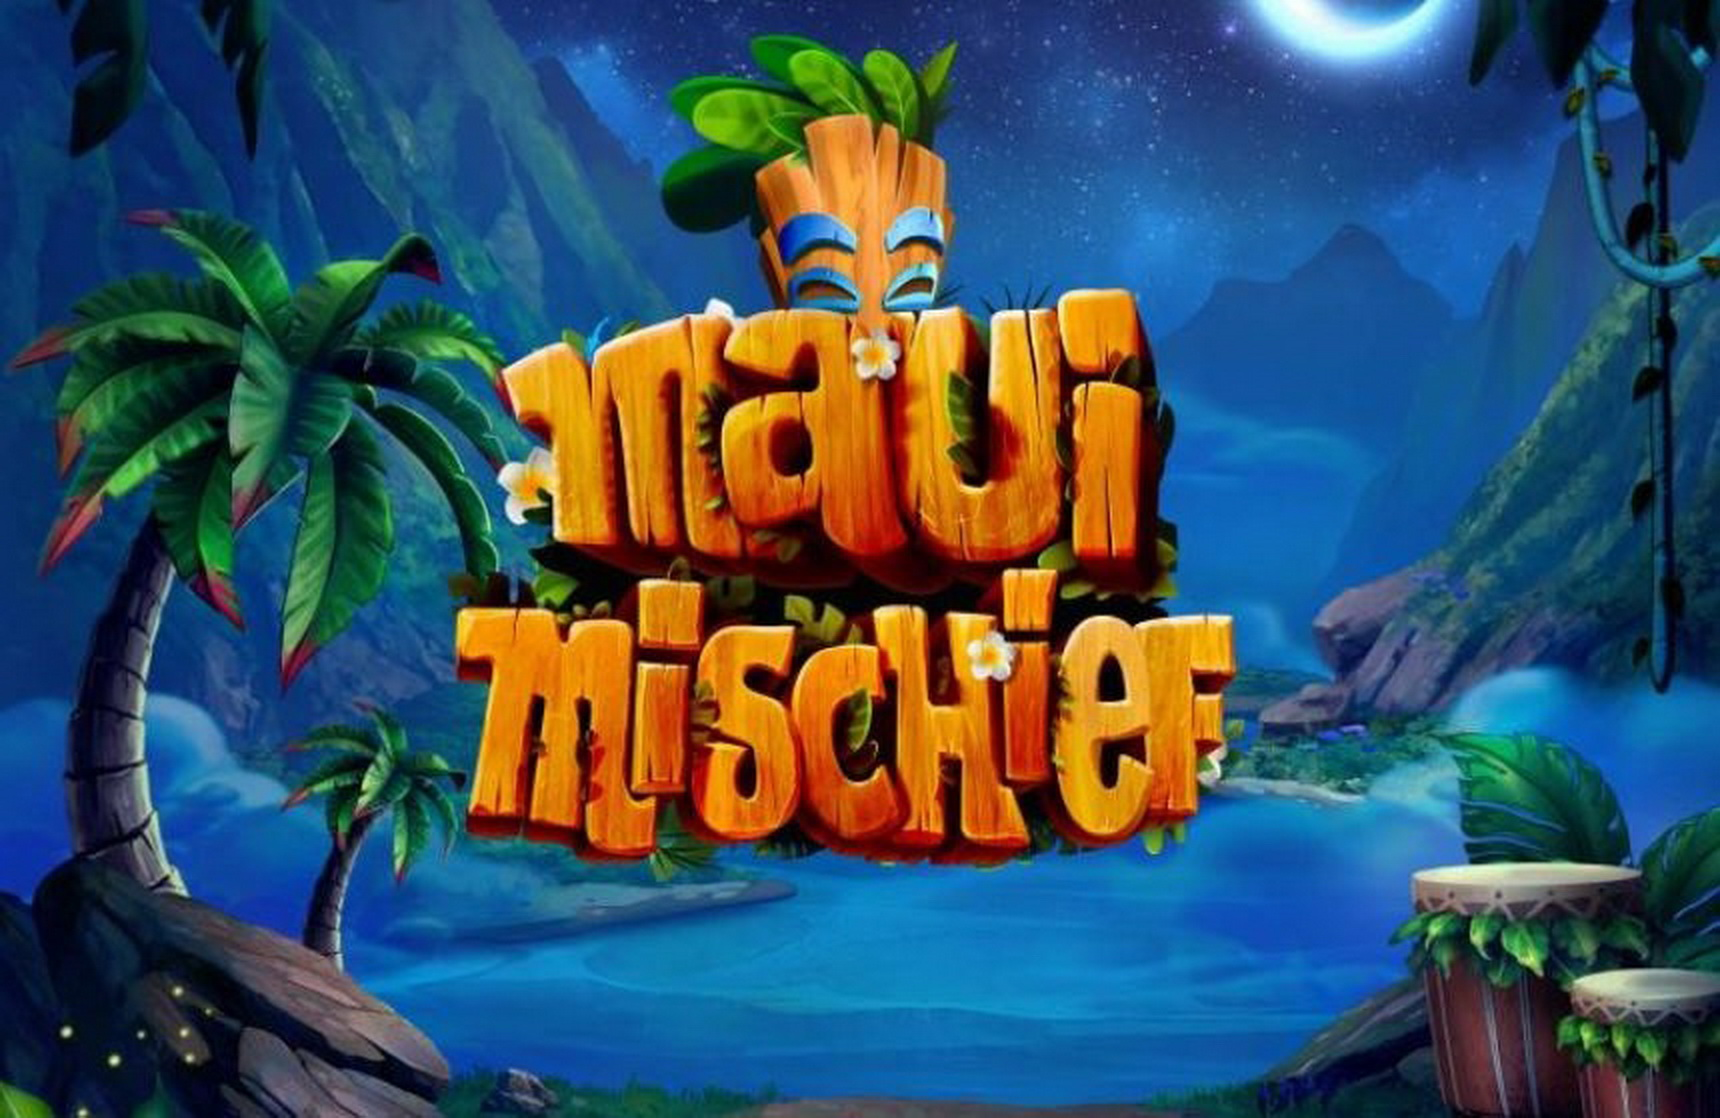 The Maui Mischief Online Slot Demo Game by Old Skool Studios